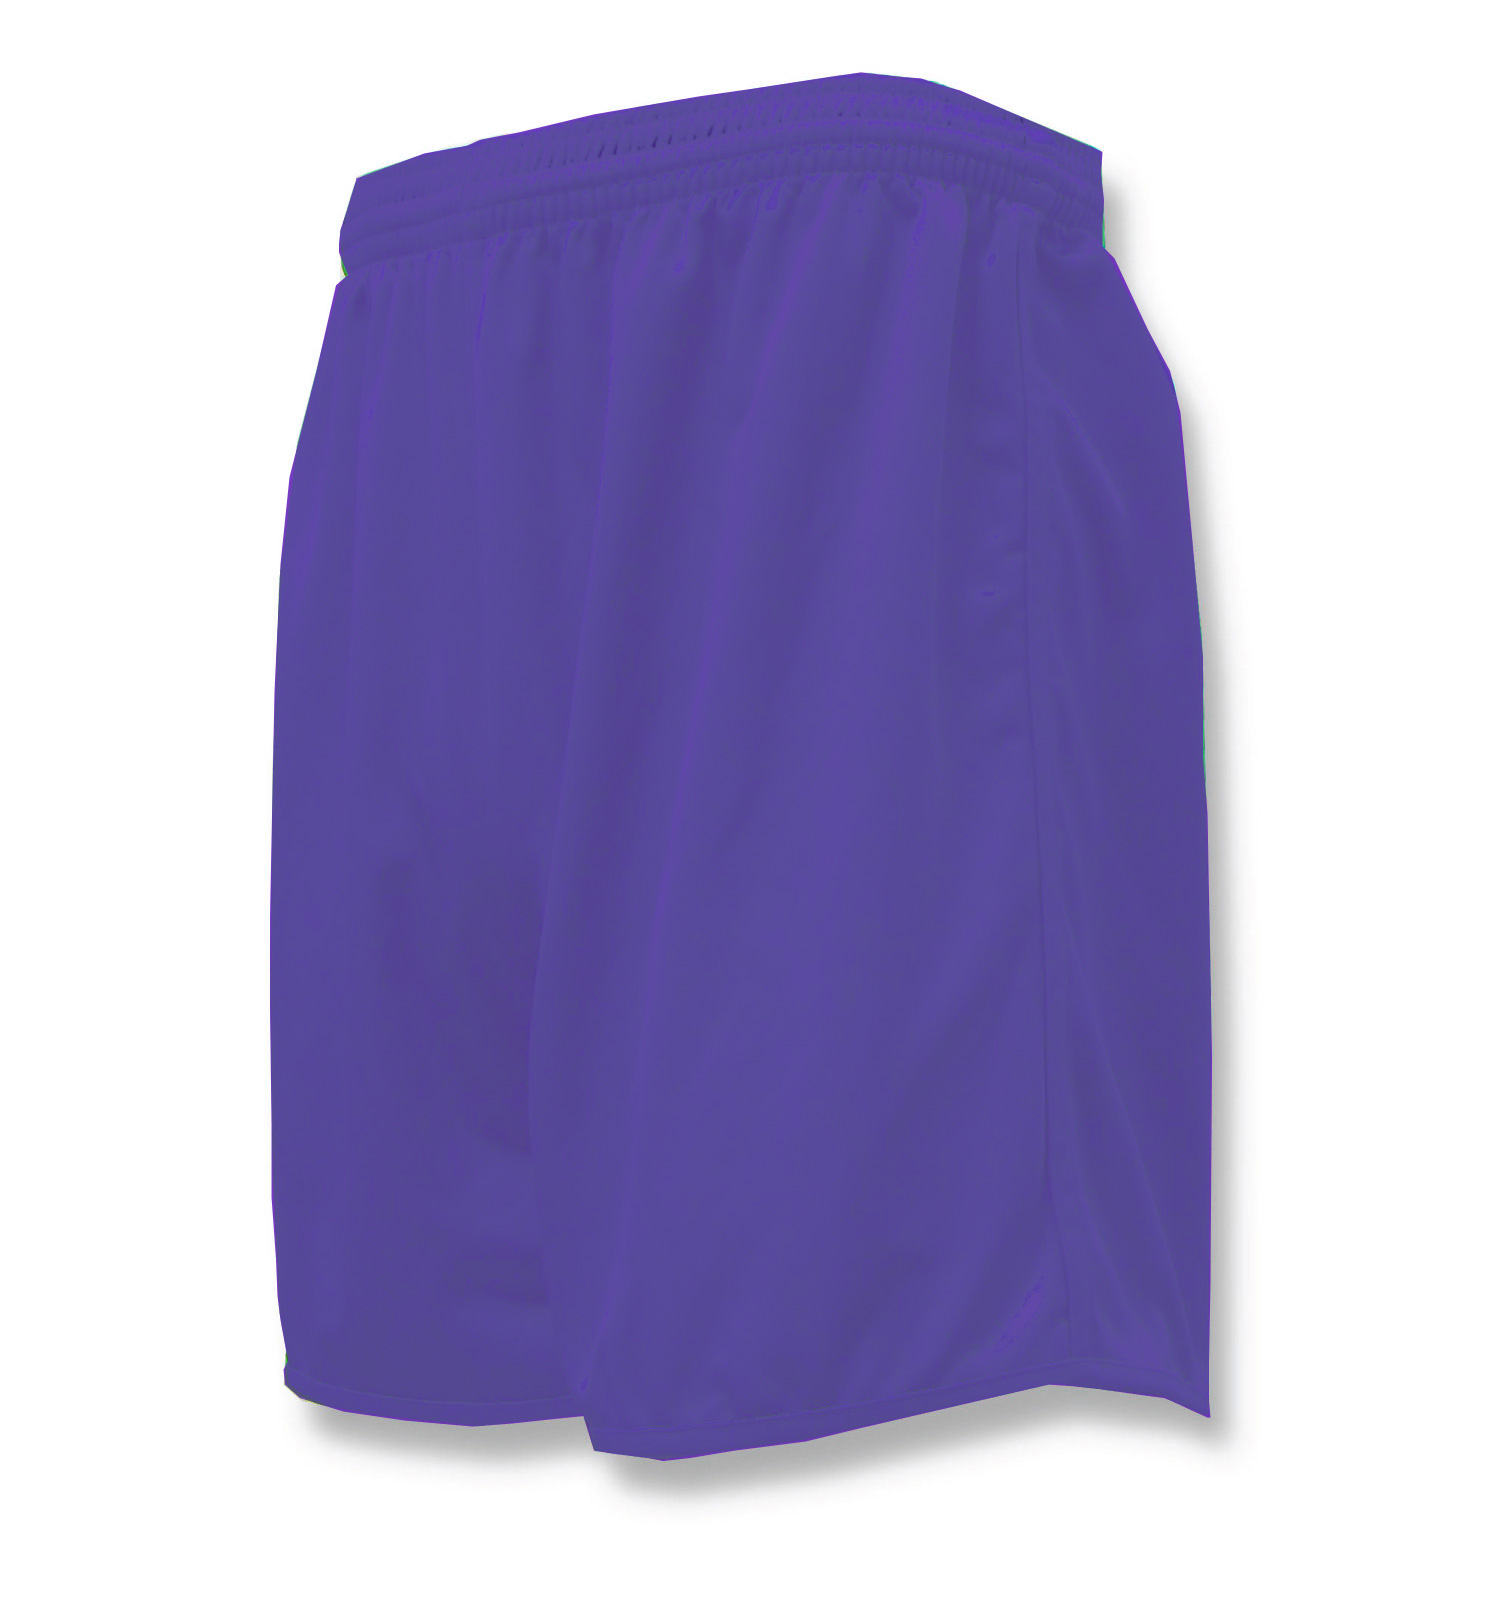 Bravo soccer shorts in purple by Code Four Athletics